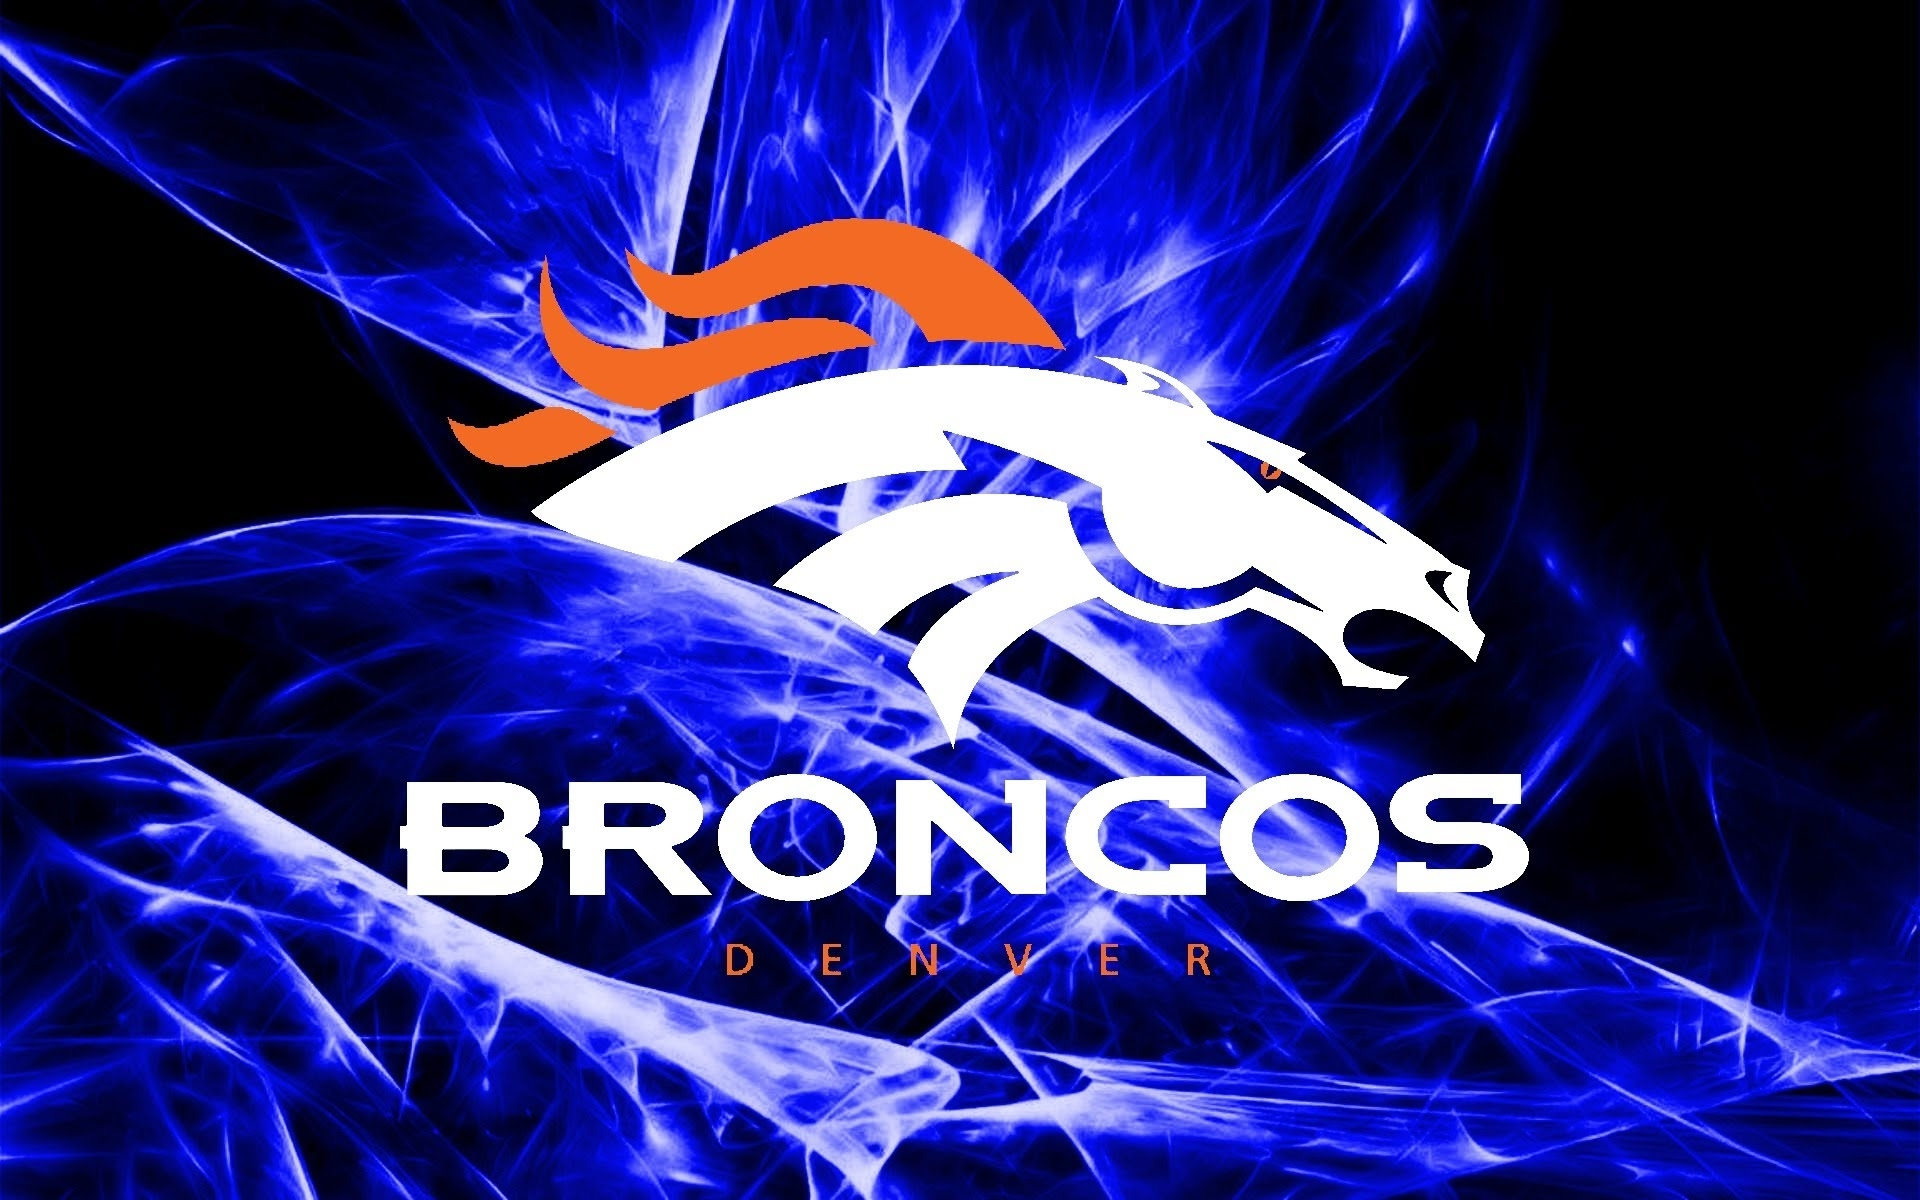 bronco wallpapers hd - page 3 of 3 - wallpaper.wiki